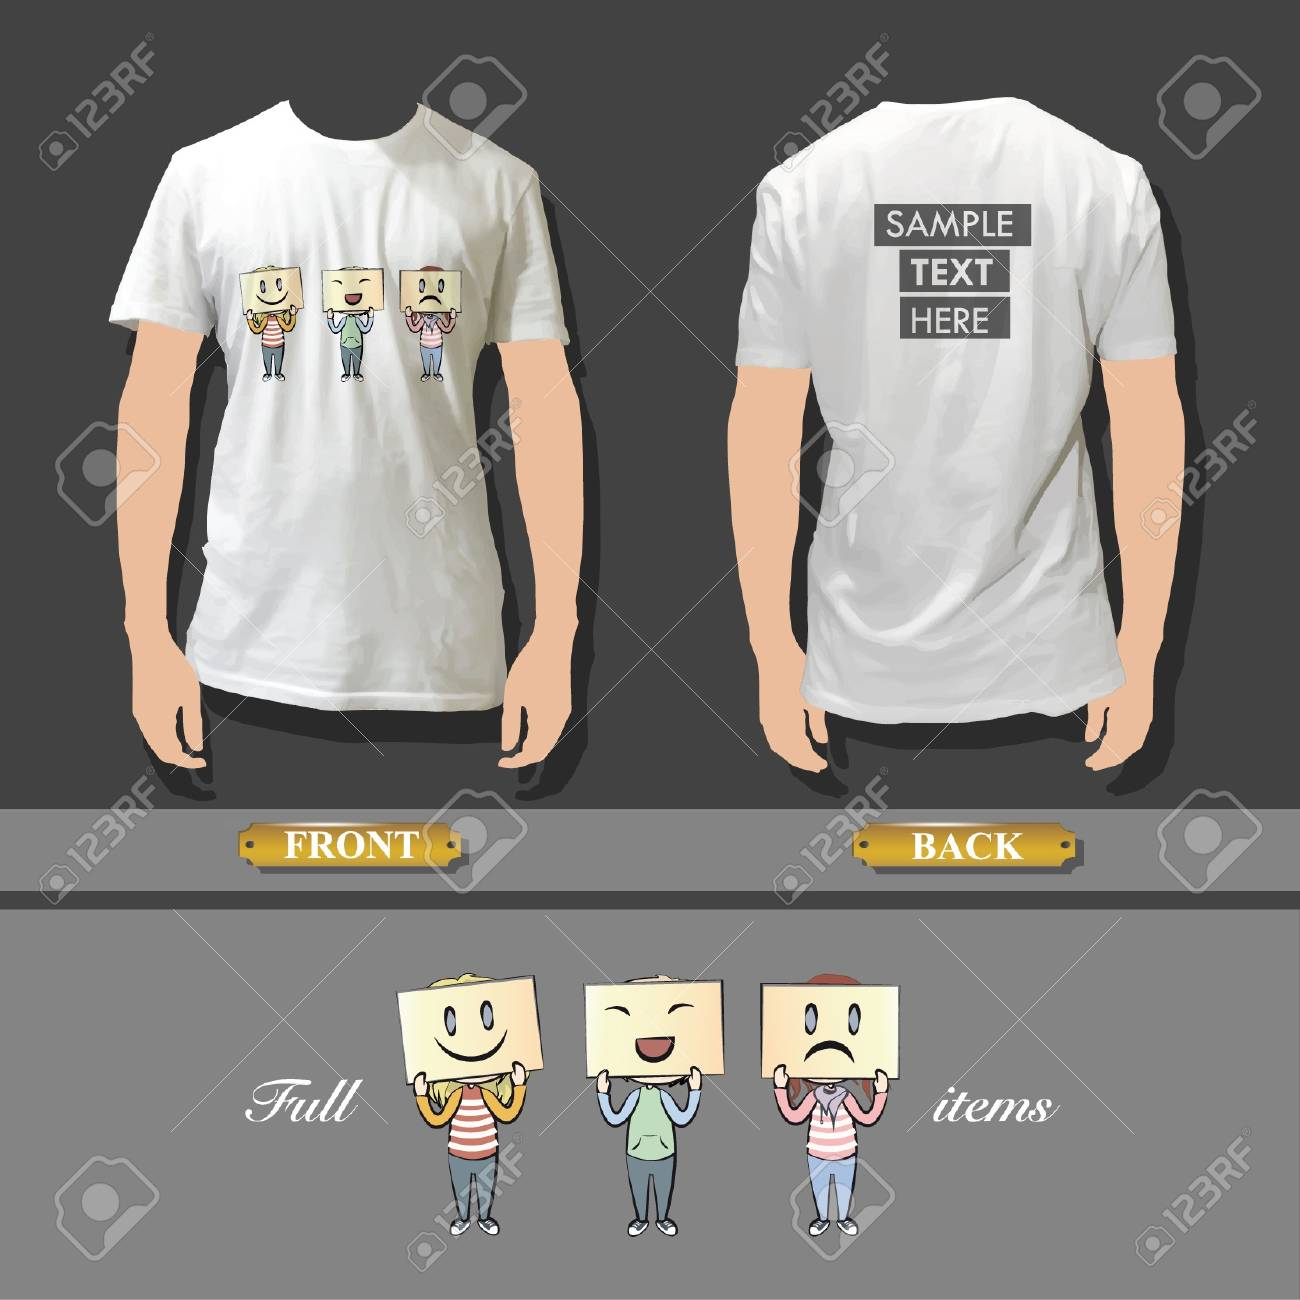 Kids with multiple emotions in a shirt  Realistic vector illustration Stock Vector - 17303233